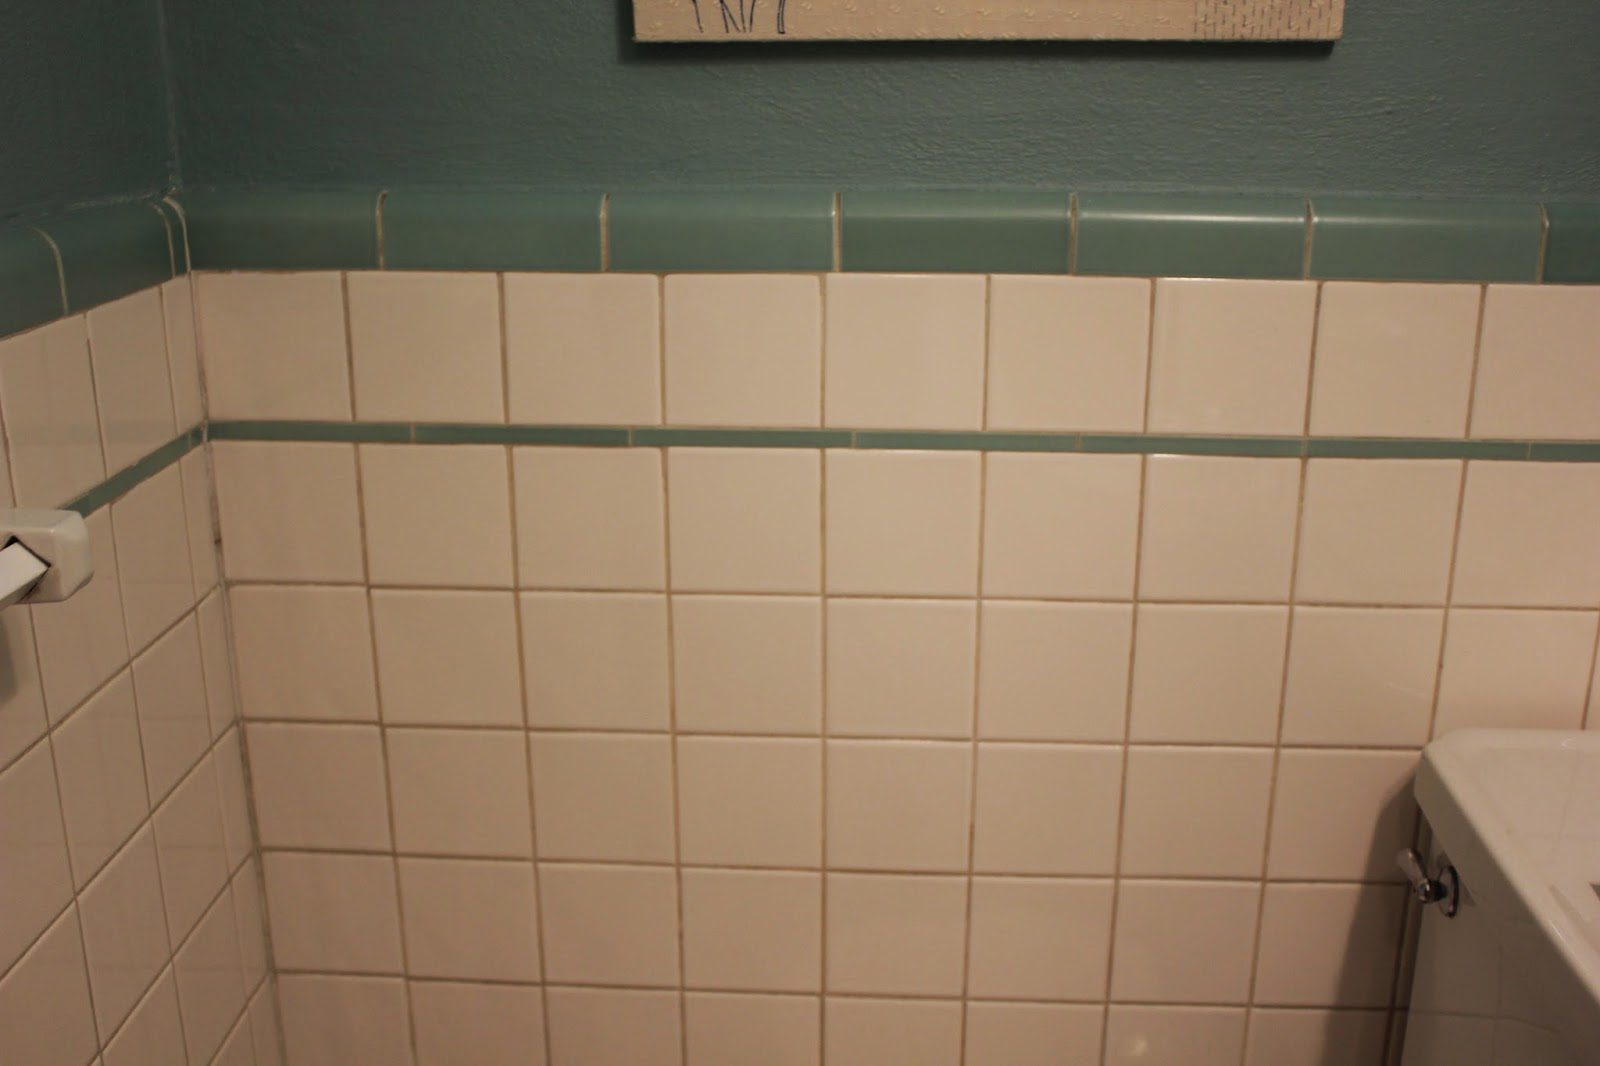 So Dingy That I Actually Thought The Tiles Themselves Were Off White